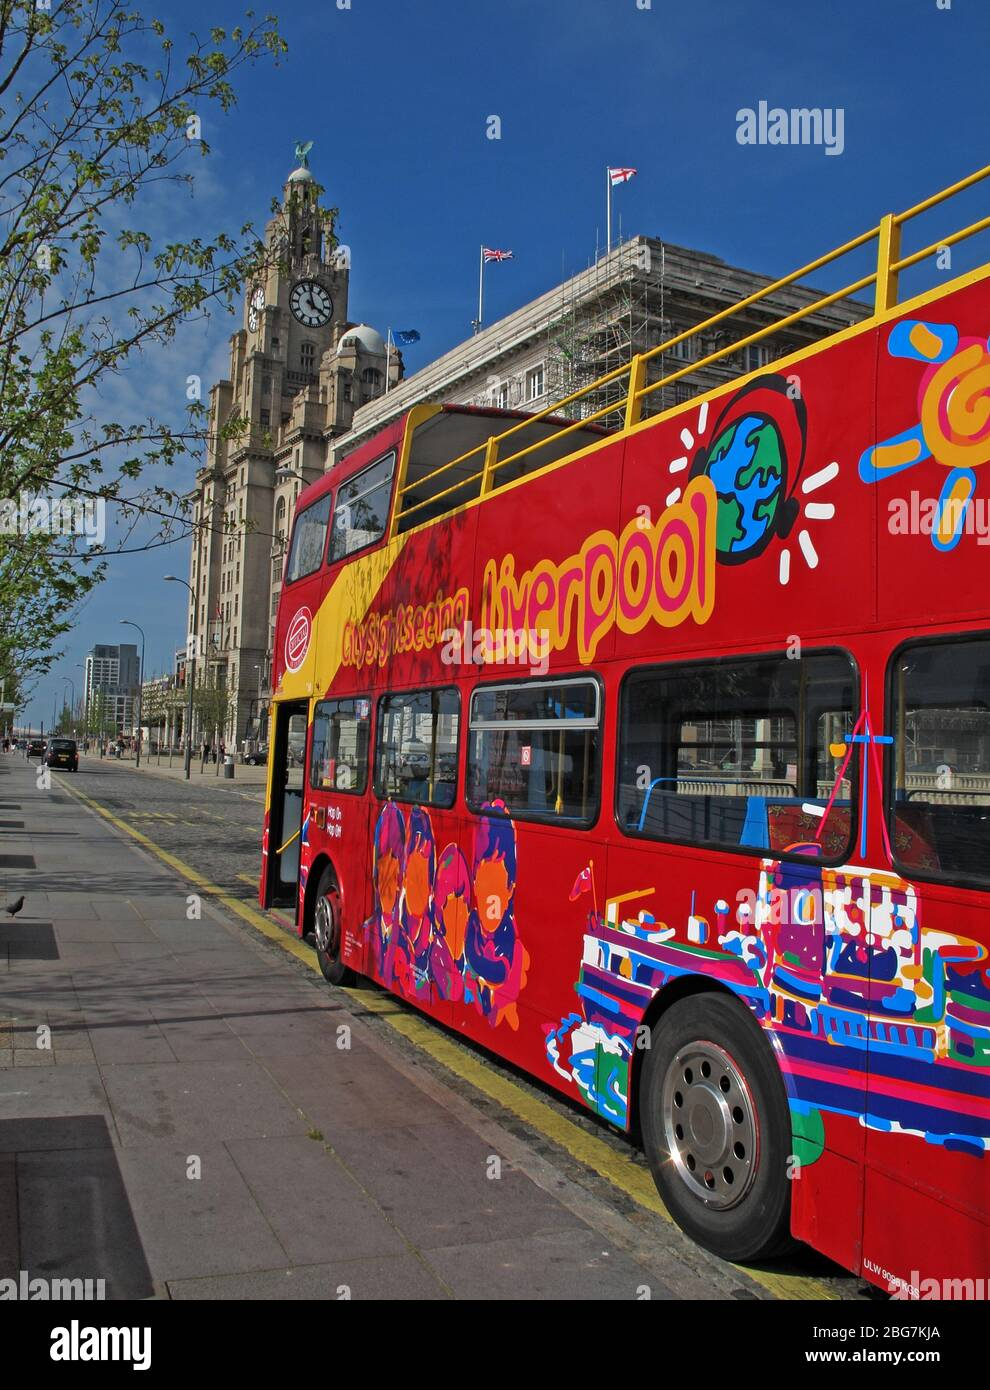 GoTonySmith,HotpixUK,@HotpixUK,North West England,England,City Centre,UK,Great Britain,tourist,travel,visit,visiting Liverpool,red bus,red tour,bus,3 graces,Three Graces,Liverpool red bus,open top bus,opentopped bus,sunny day,sunshine,open topped bus,water front,Unesco World Heritage Site,Royal Liver Building,architecture,Open Top Bus Tour